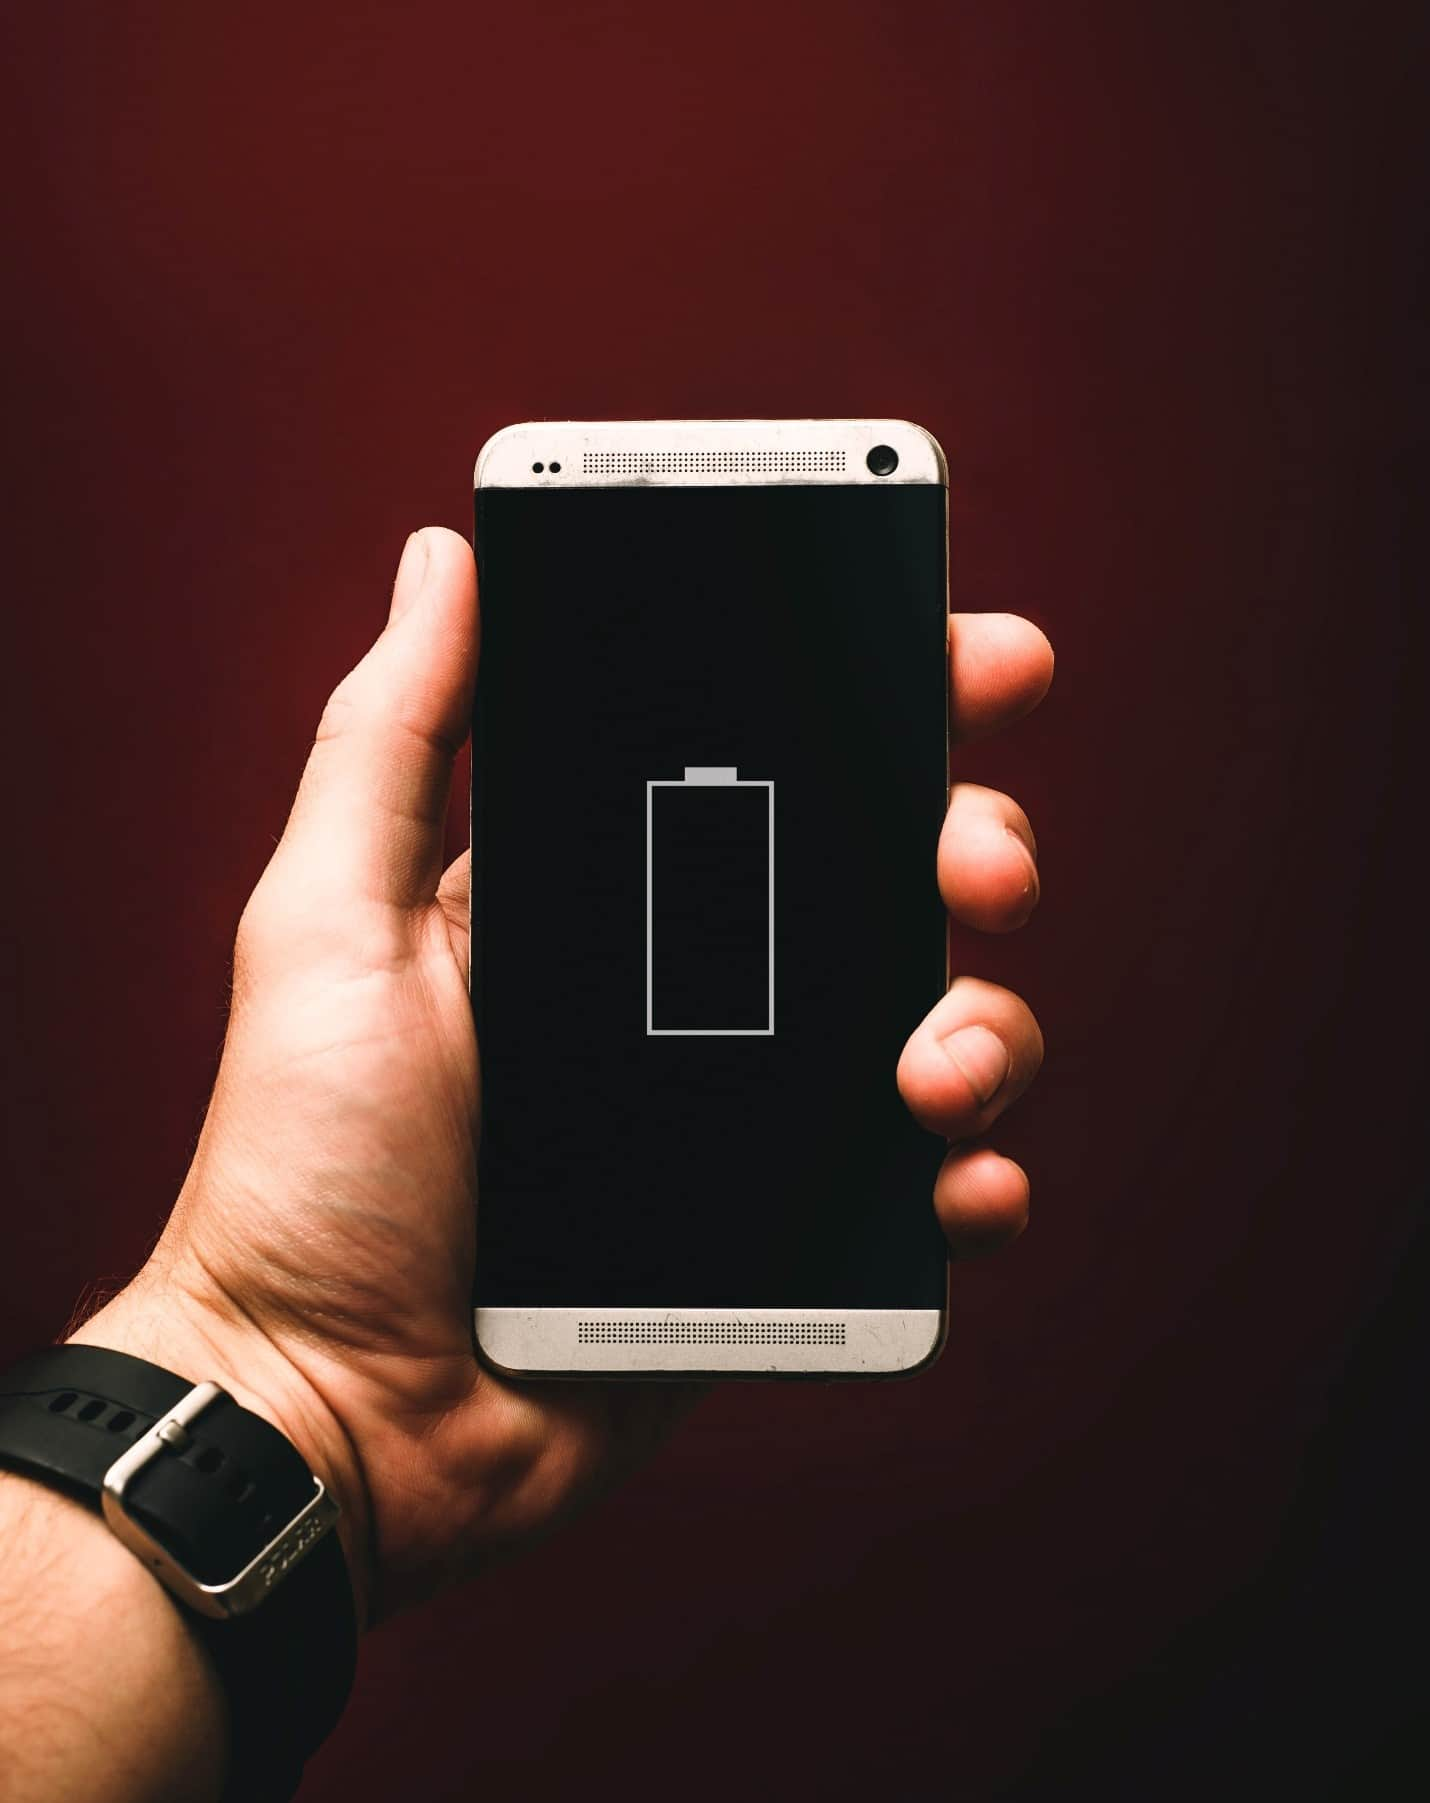 content/tr-tr/images/repository/isc/2020/9910/prolong-your-smartphone-battery-lifespan-1.jpg